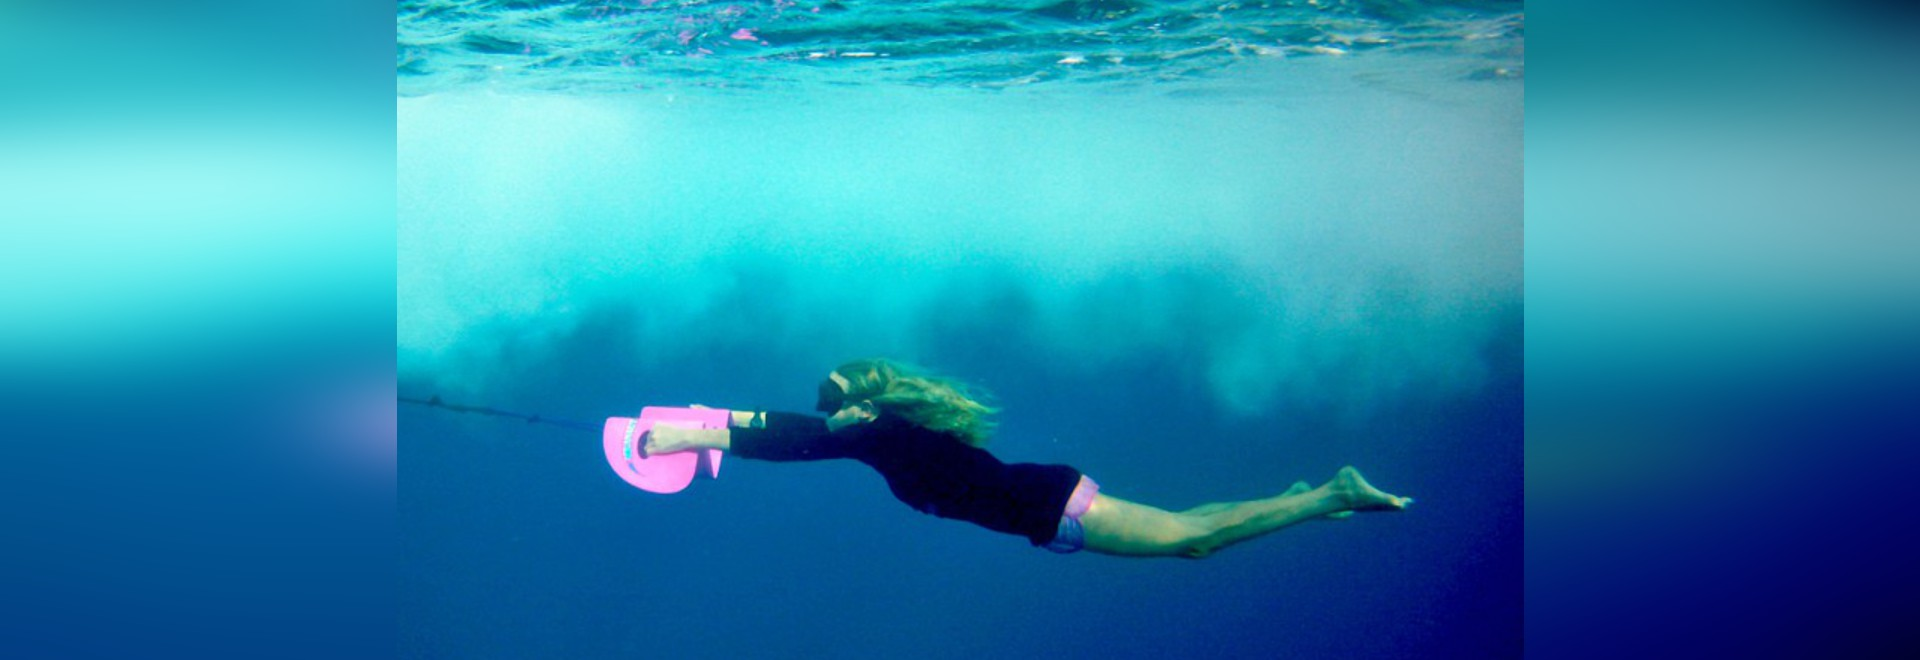 NAUTBOARD: A NEW KIND OF WATER TOY